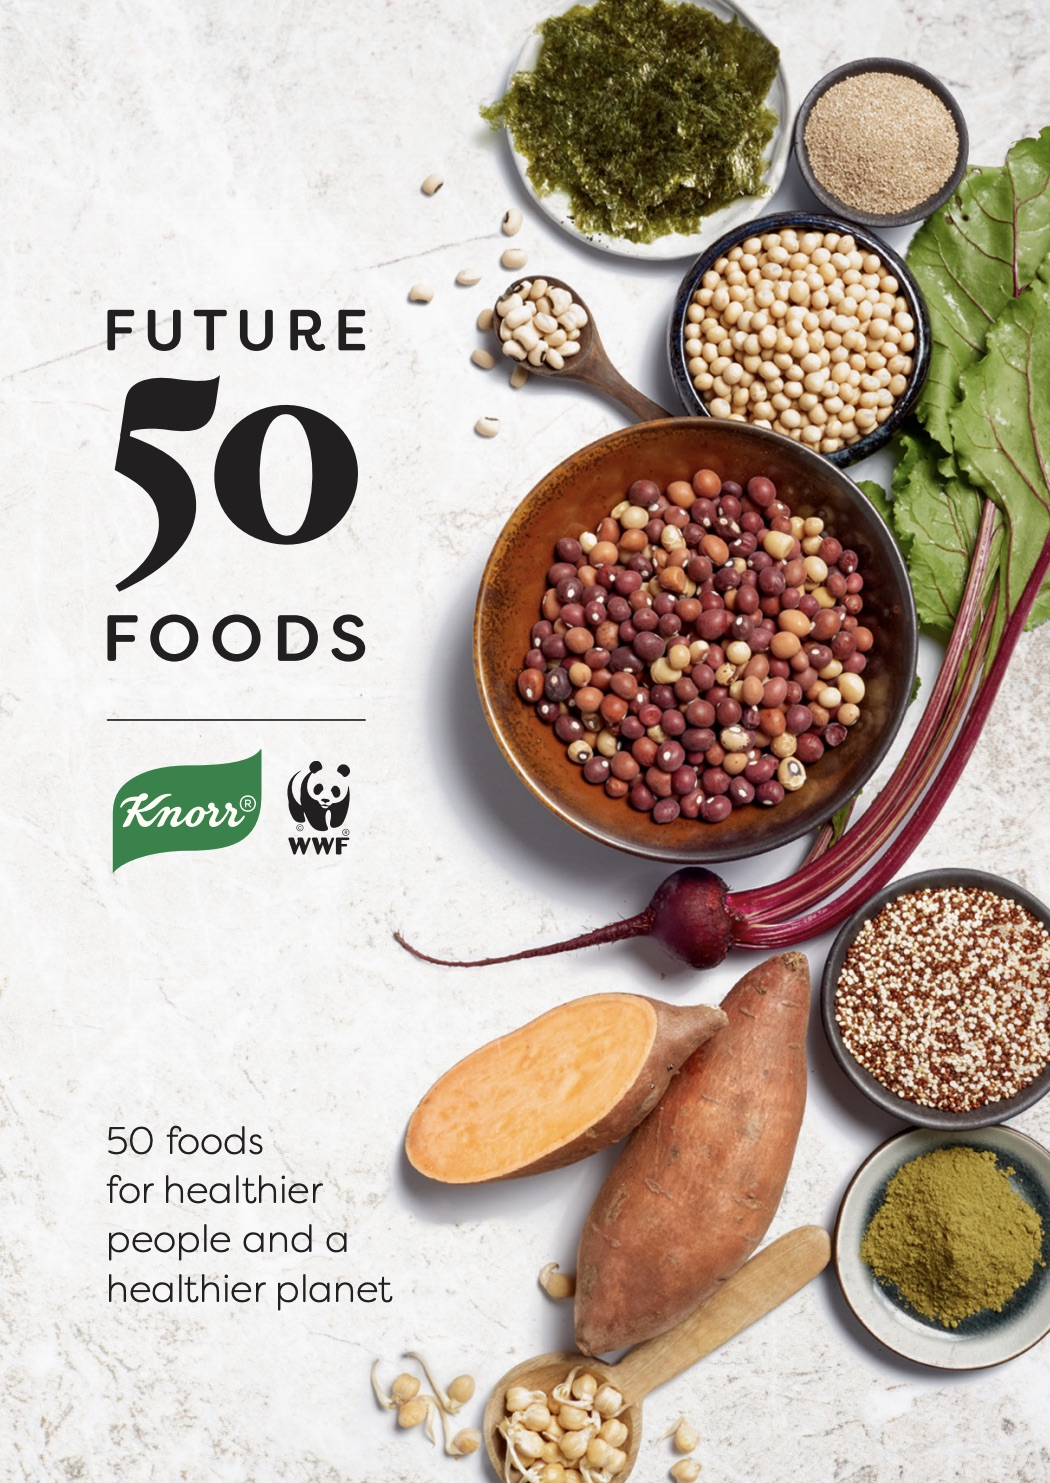 Future 50 Foods: The essential grains, legumes, vegetables, and more that we need to start consuming for a healthier planet | coolmomeats.com